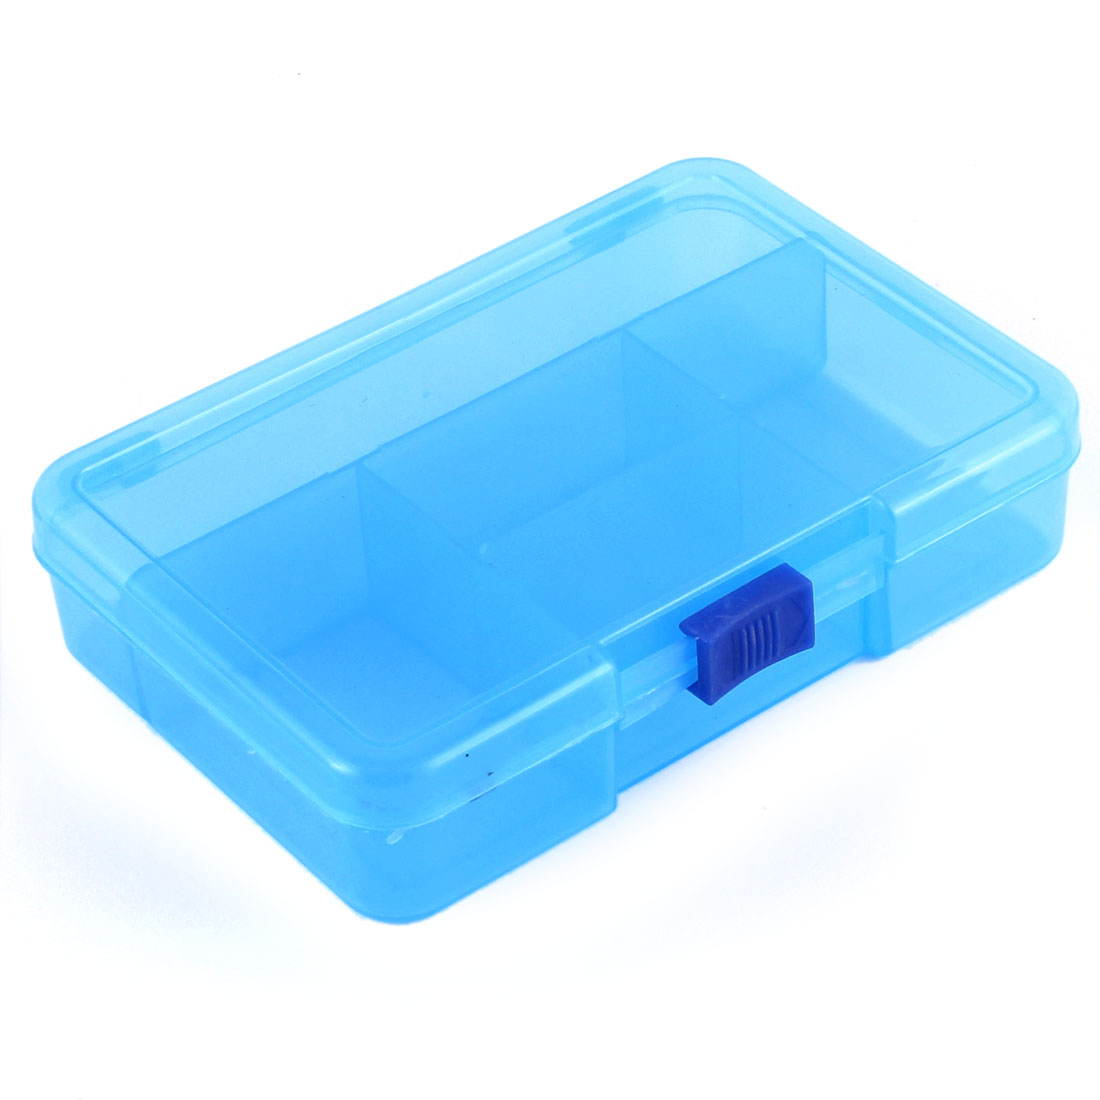 Home Jewelry Beads Fish Bait Plastic 5 Slots Storage Box Case Organizer Clear Blue